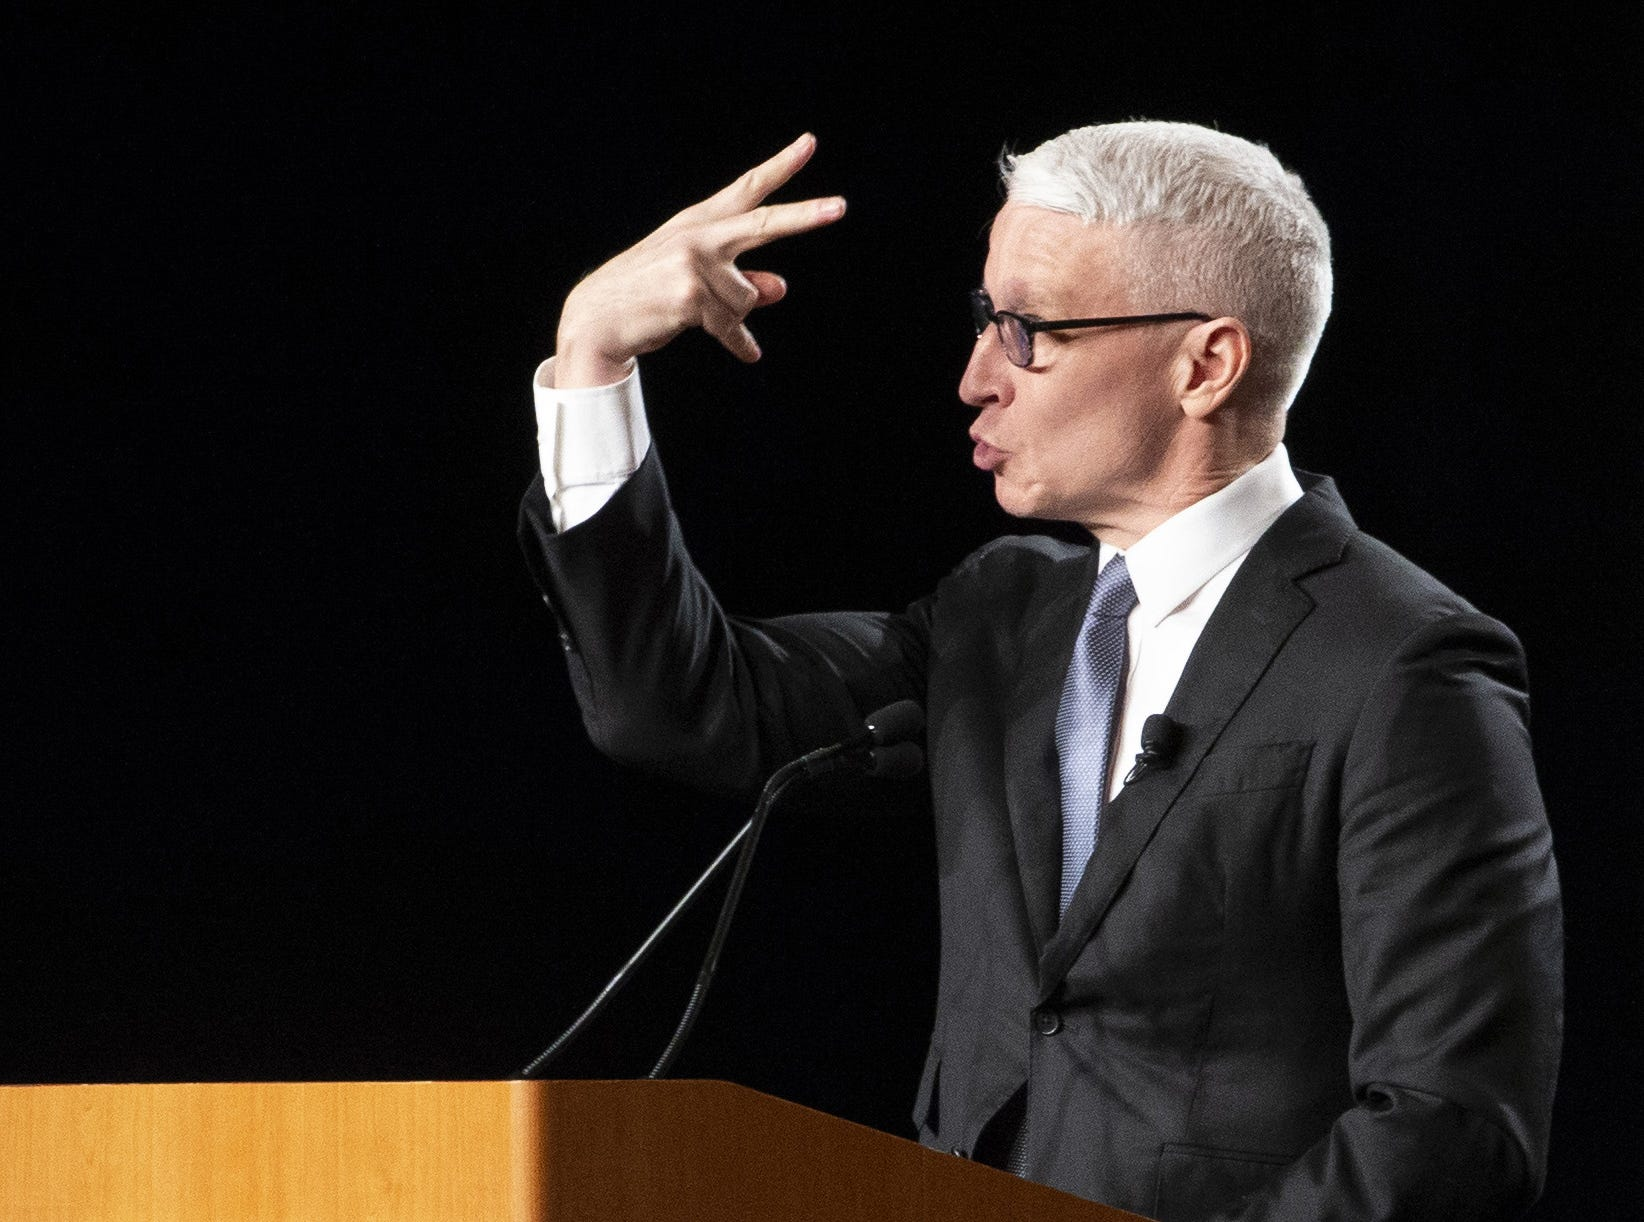 CNN anchor Anderson Cooper shares a humorous story after receiving  the annual Cronkite award for excellence in journalism during a luncheon at the Sheraton in Phoenix on October 17, 2018.